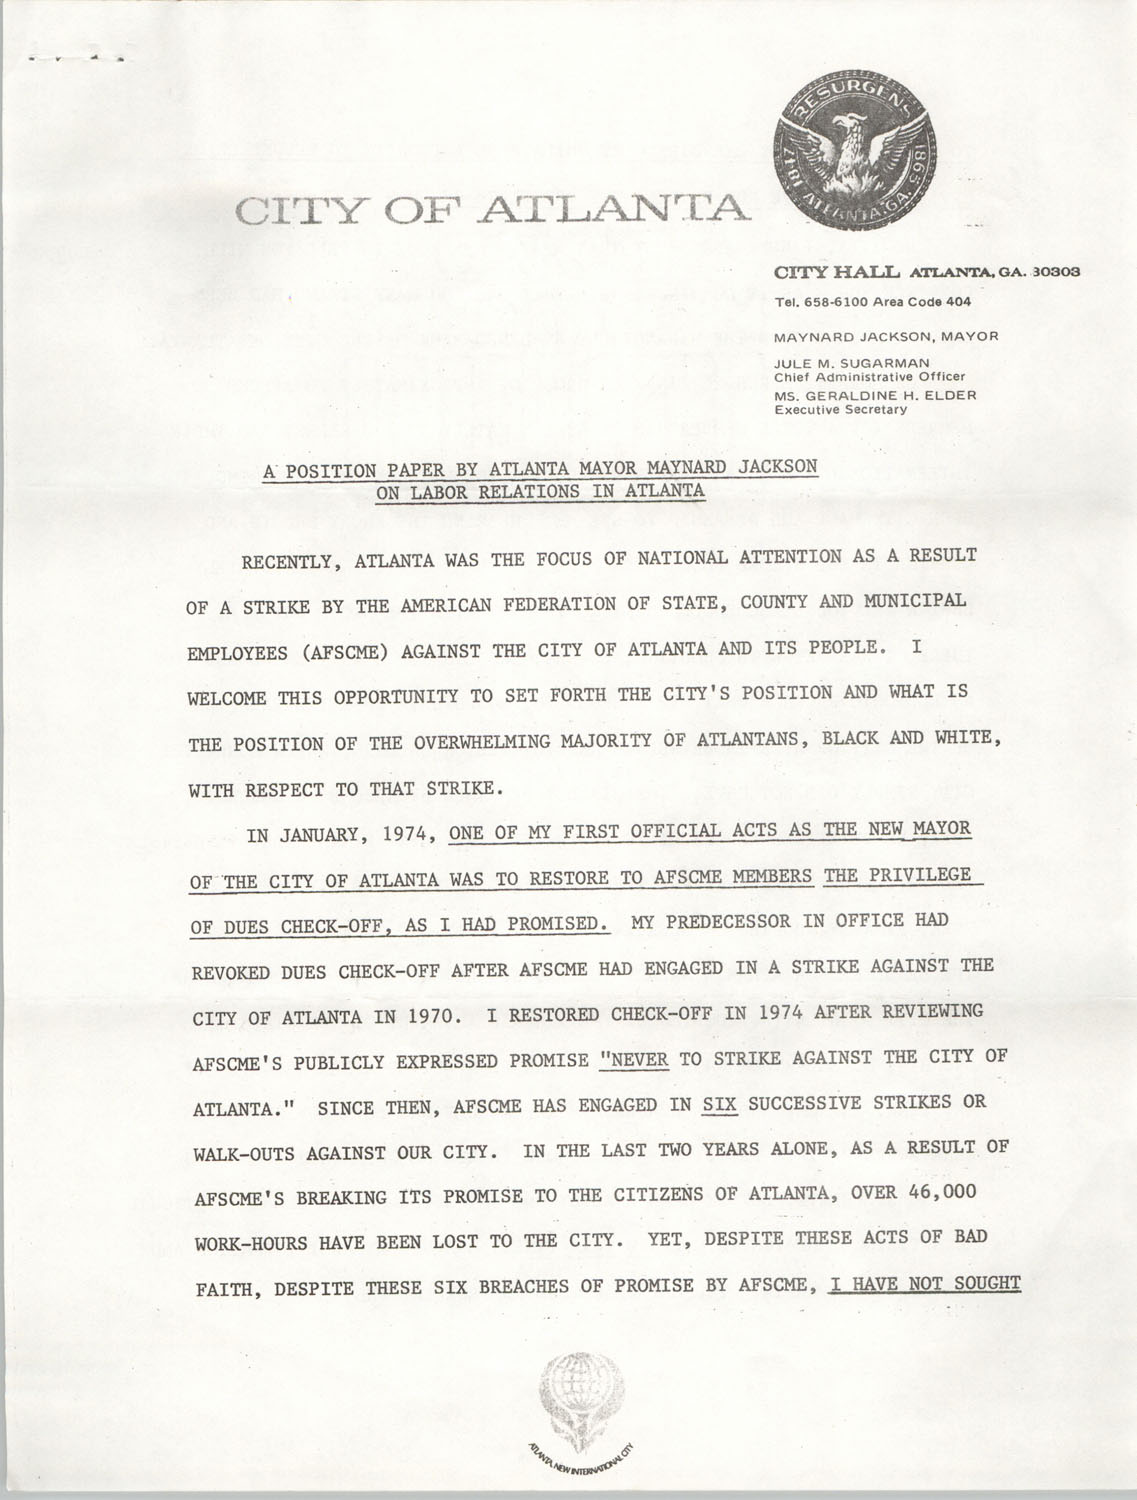 A Position Paper By Atlanta Mayor Maynard Jackson On Labor Relations In Atlanta, Page 1